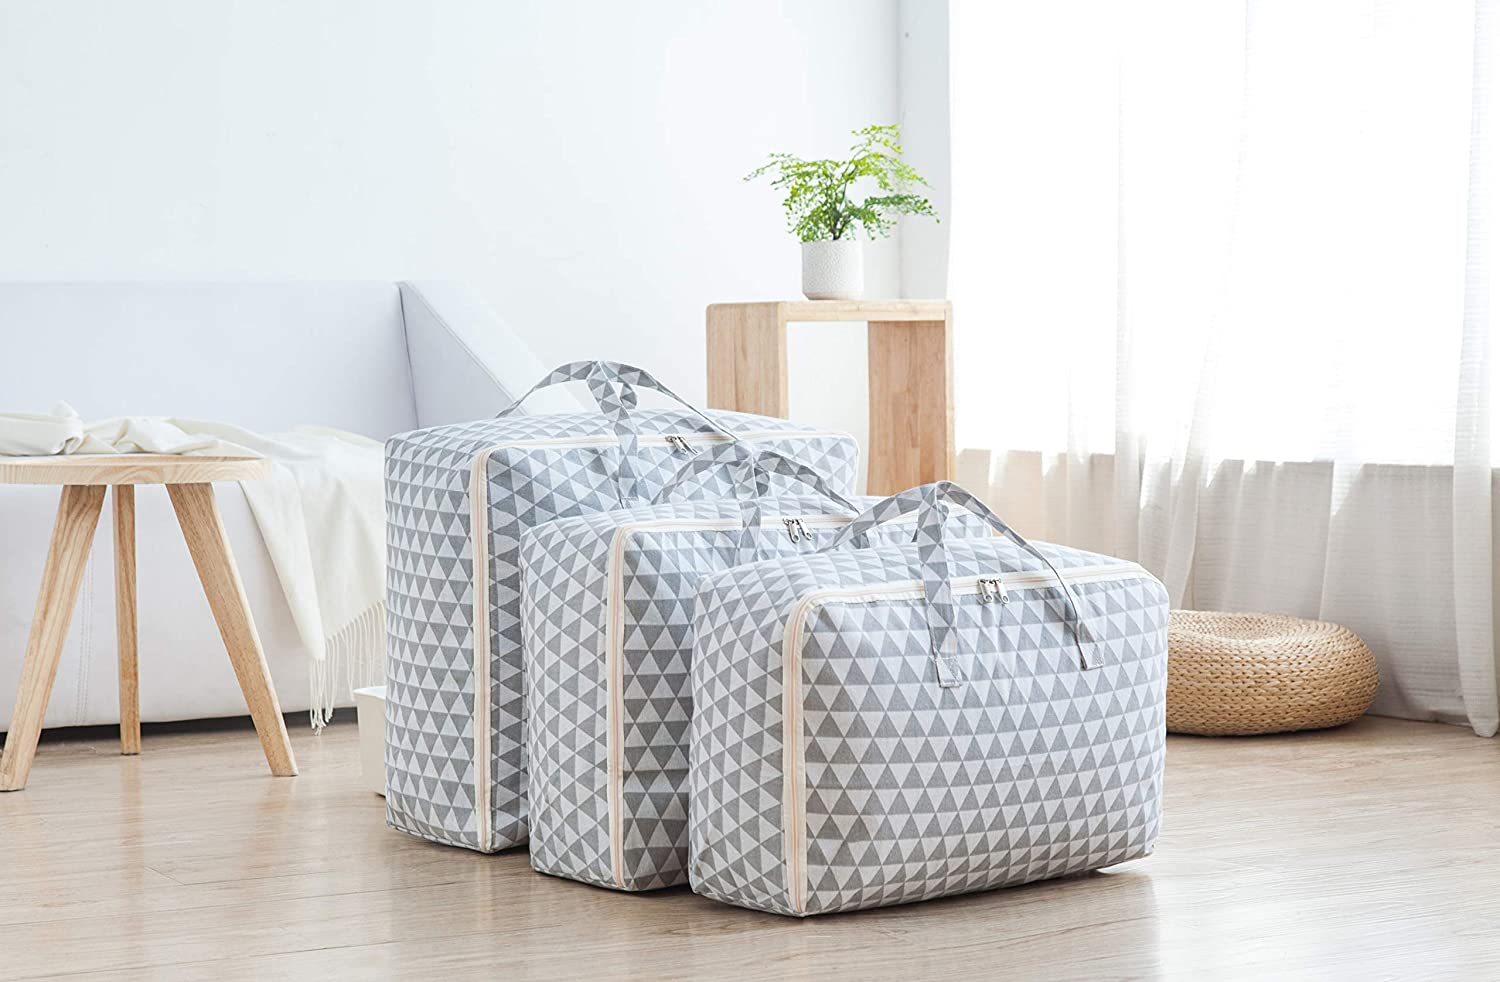 Jujin 600D Oxford Large Clothing Organizer Storage Bags Foldable Comforter Blankets Clothes Storage Bags Whale 3PCS YX-WH